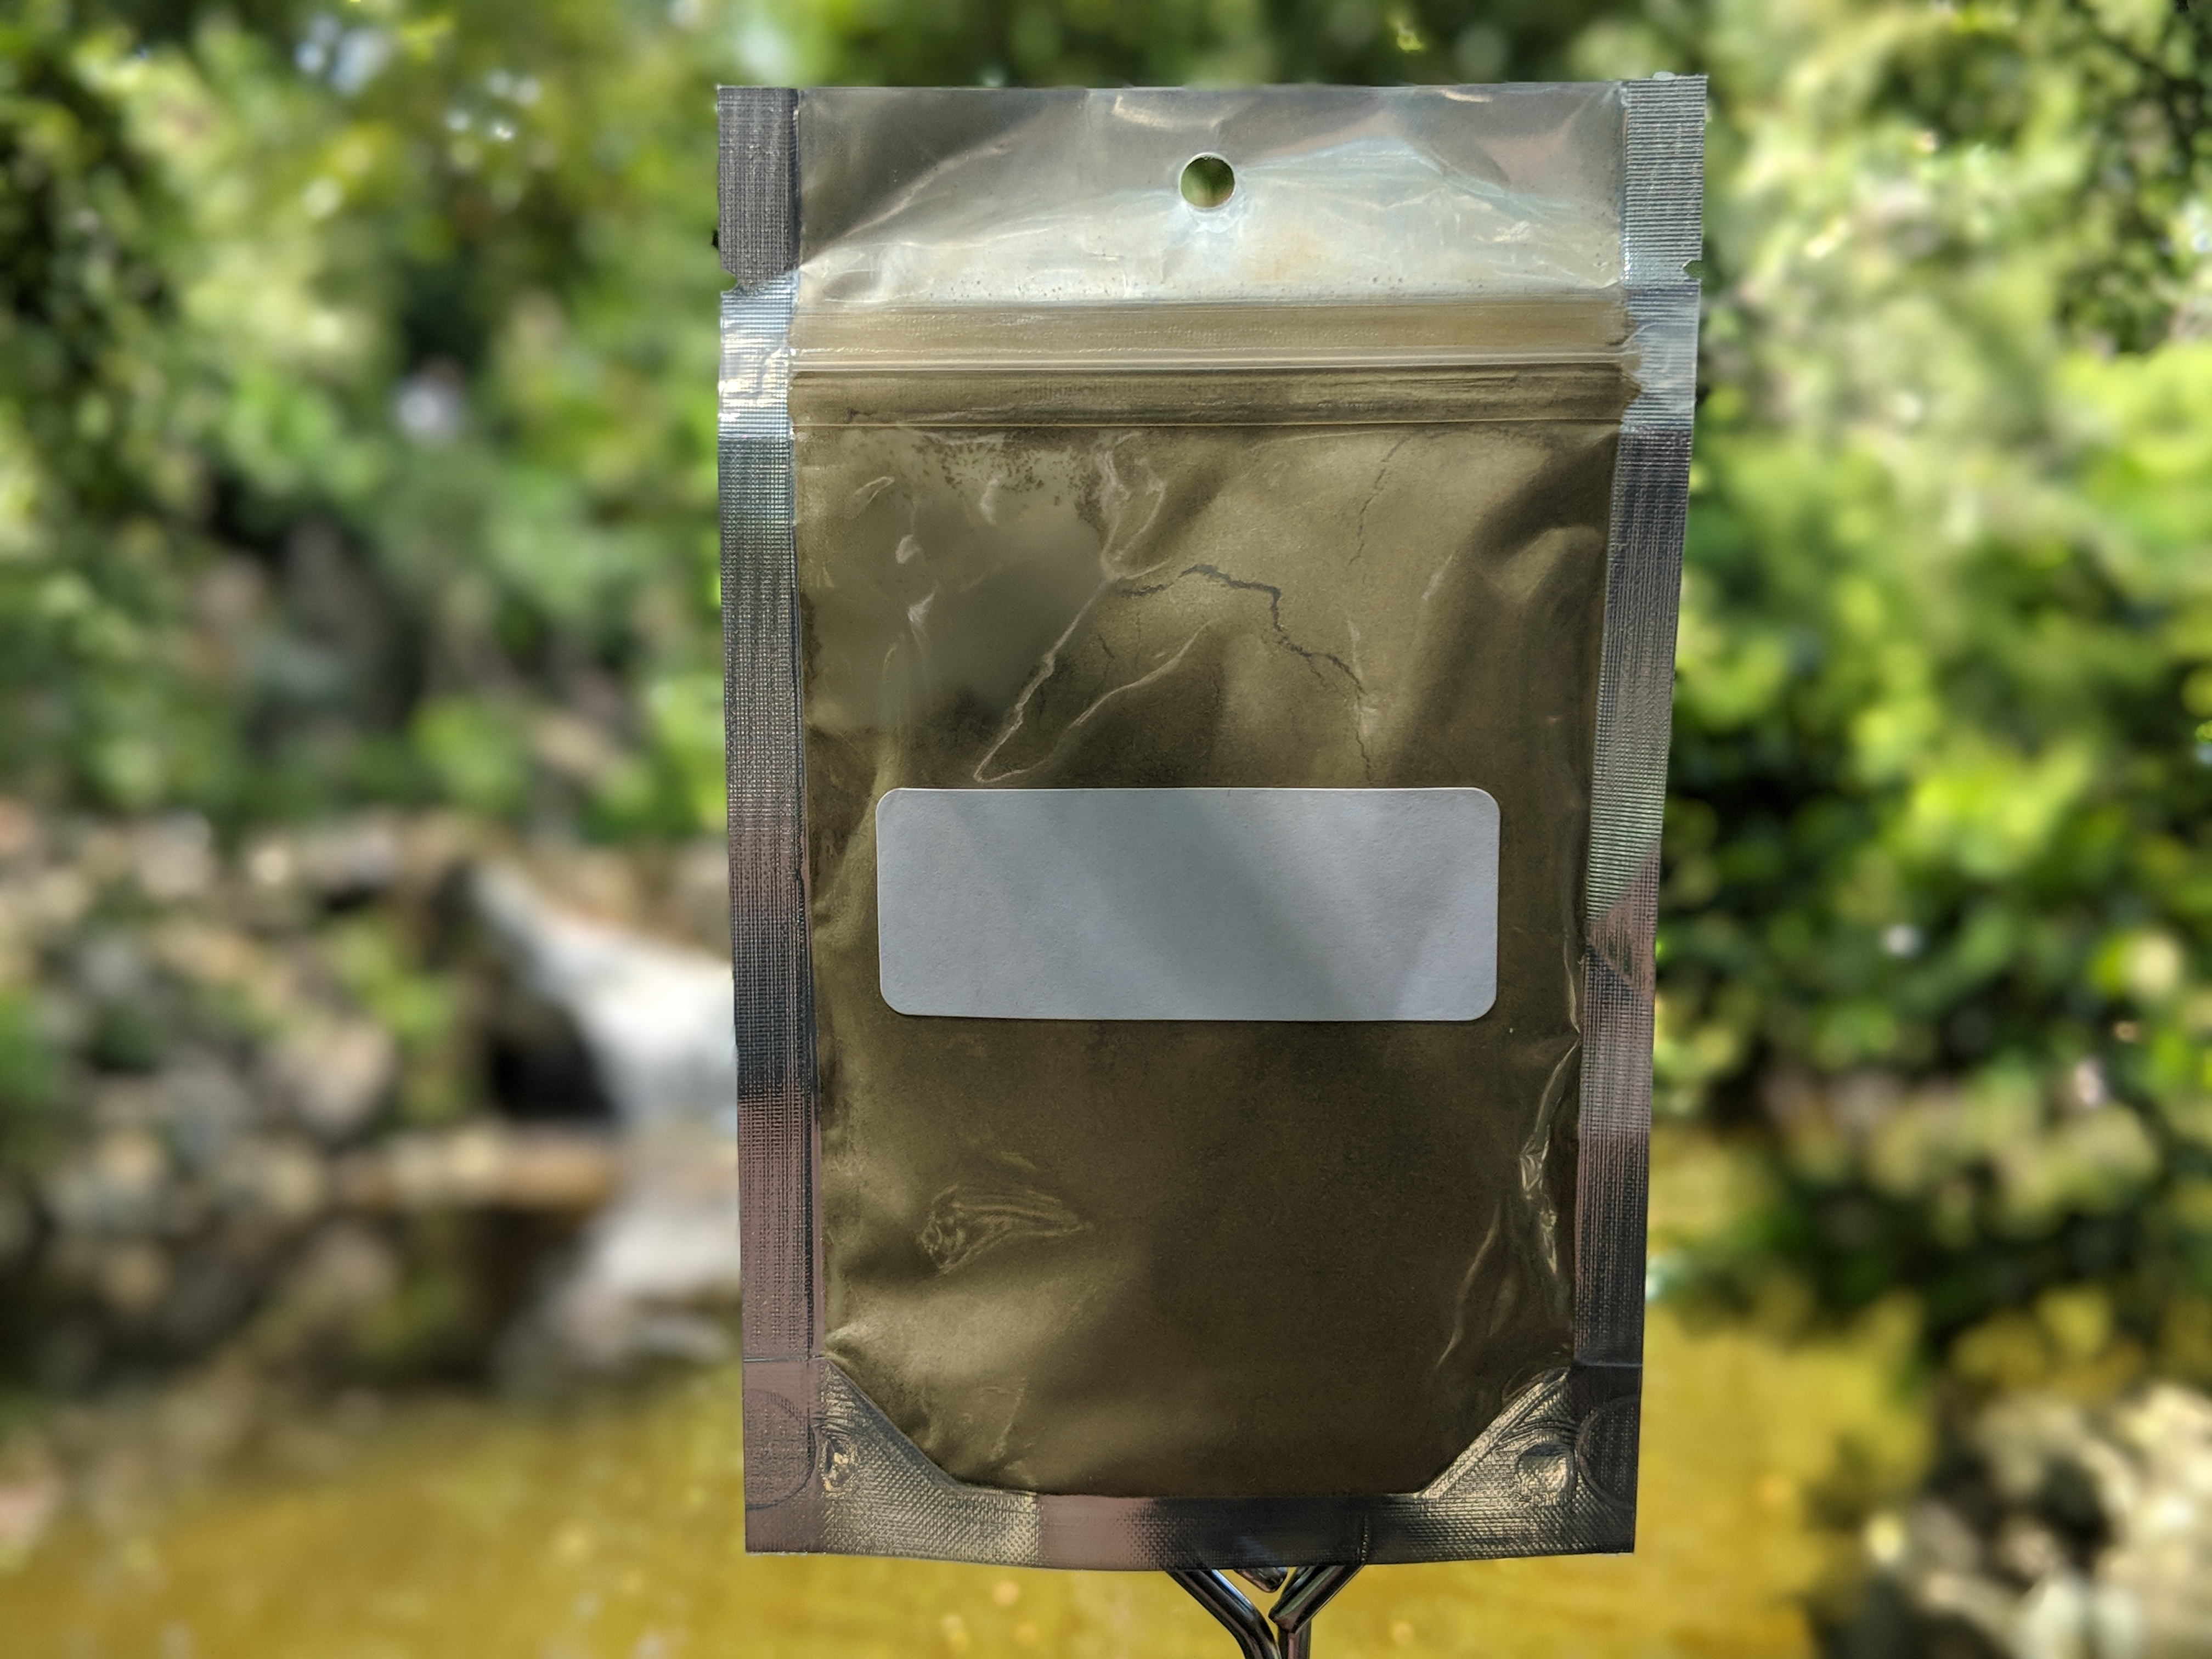 White Vein Vietnam Kratom powder for sale freeship usa